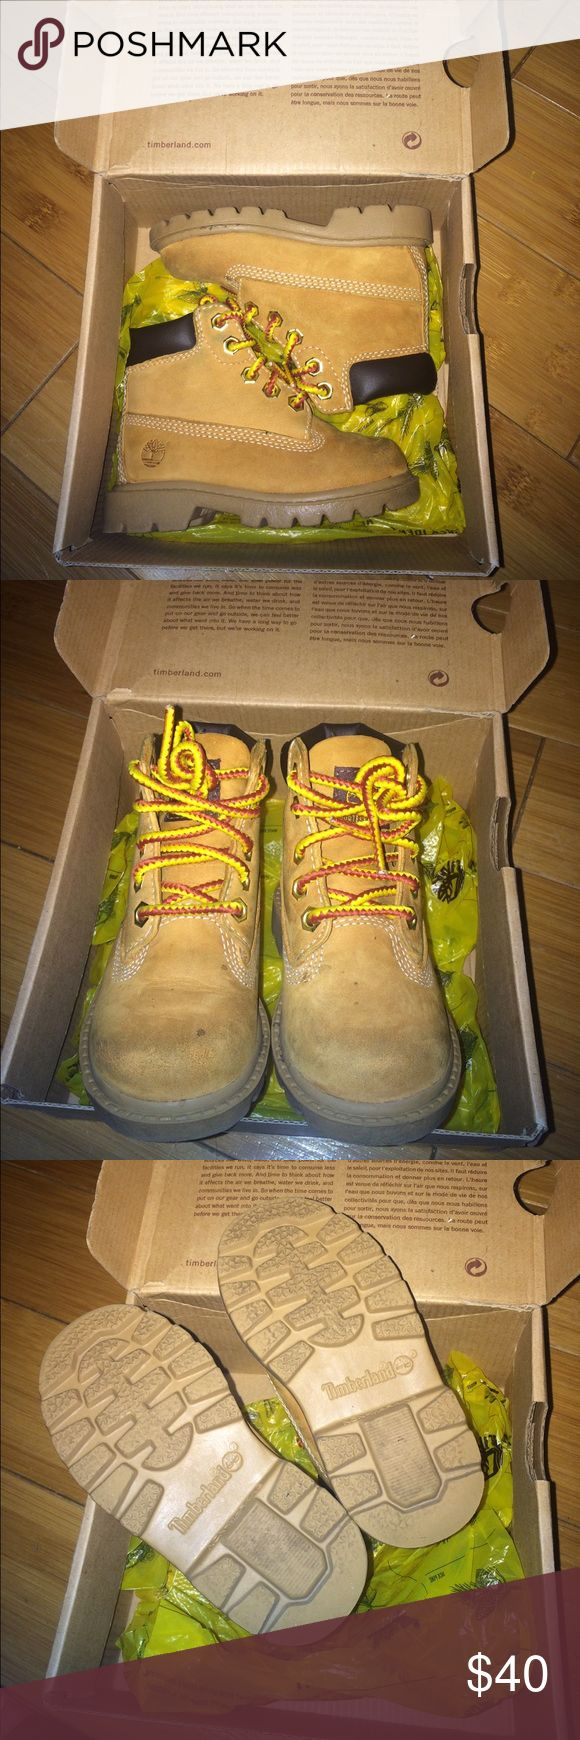 """Toddler Timberland size 6 These toddler Timberland still have plenty of life as you can see at the bottom of the shoe. The only issue is the front that is a little """"used"""". If you can live with that, this is a great deal for you kid! Timberland Shoes Boots"""